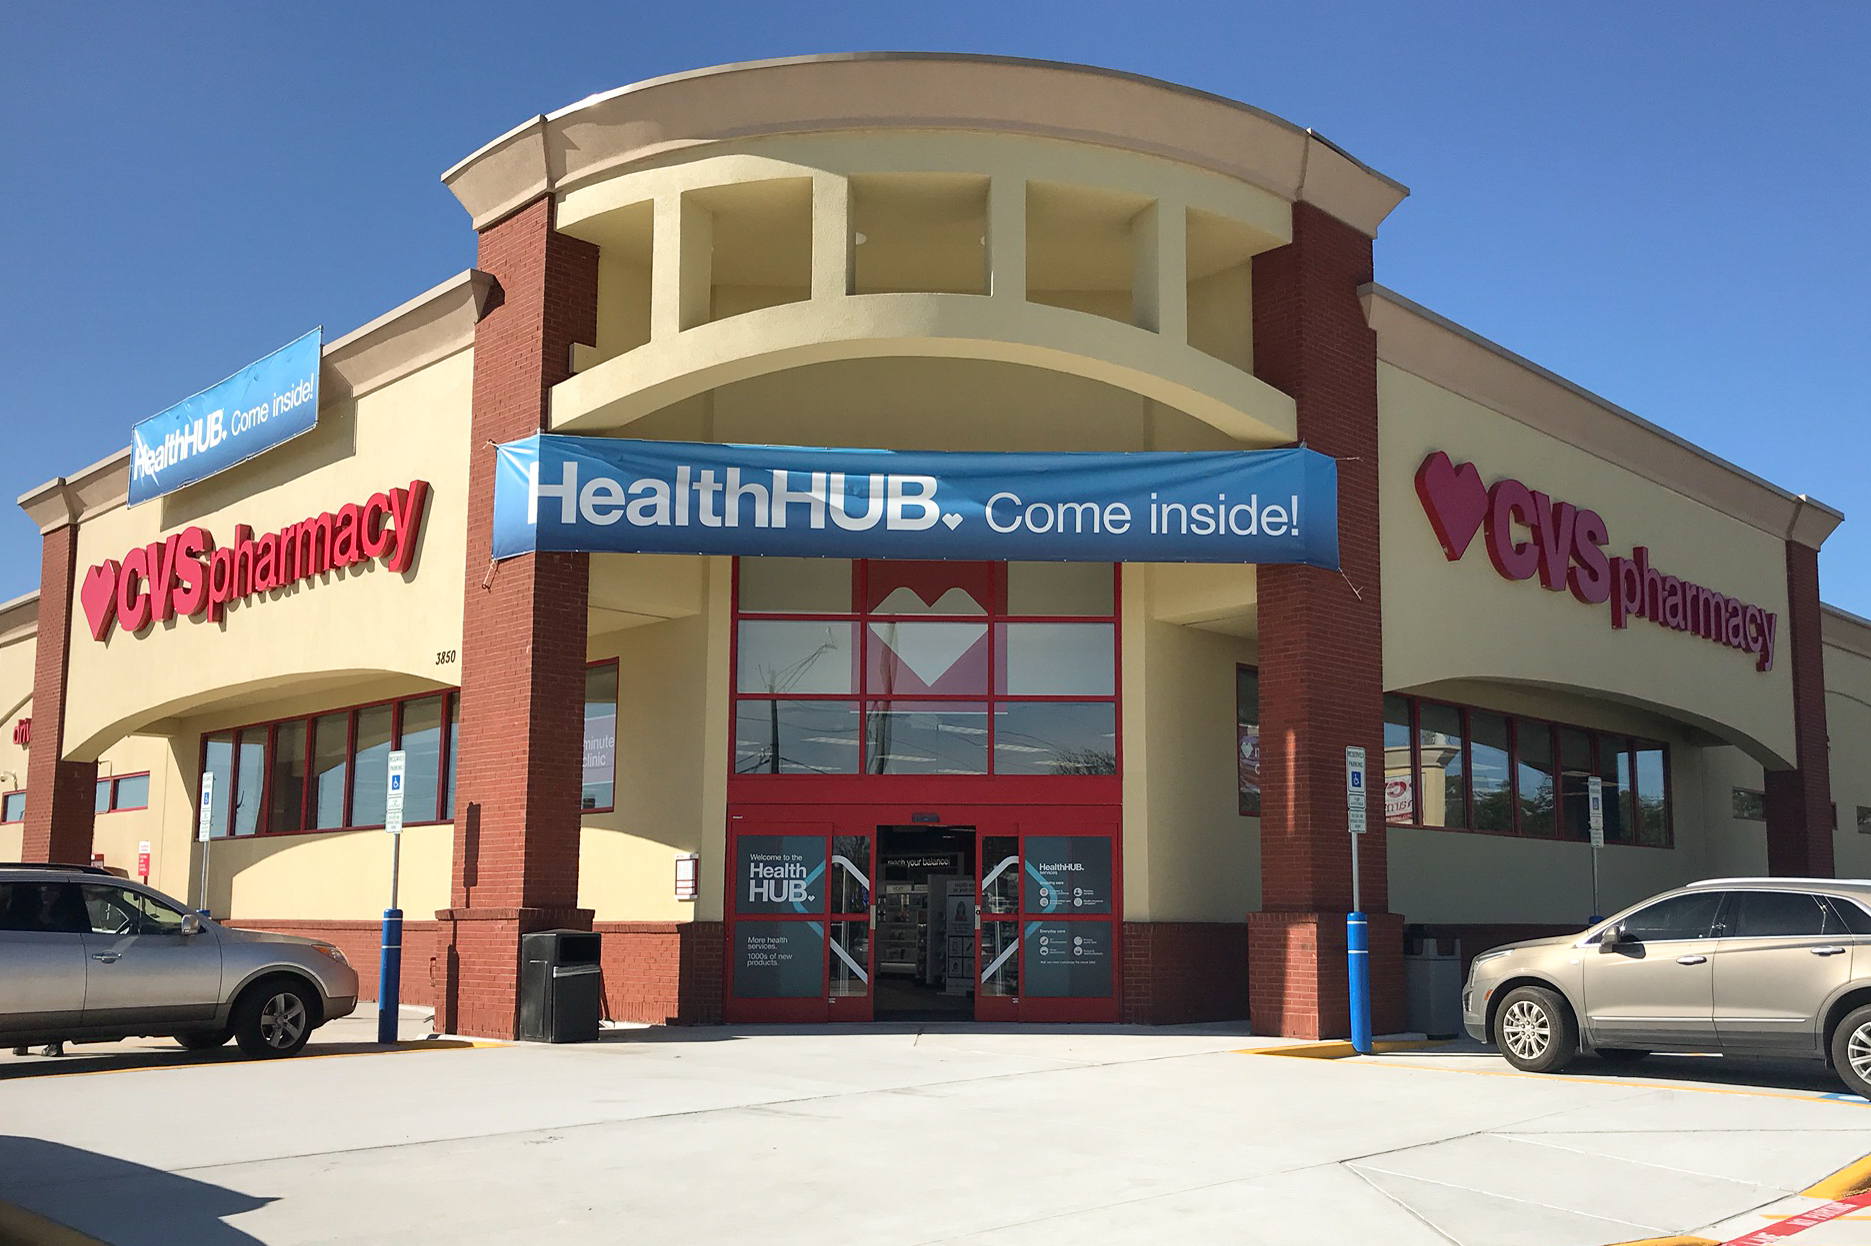 Cvs Looks To Make Its Drugstores A Destination For Health Care Mpr News